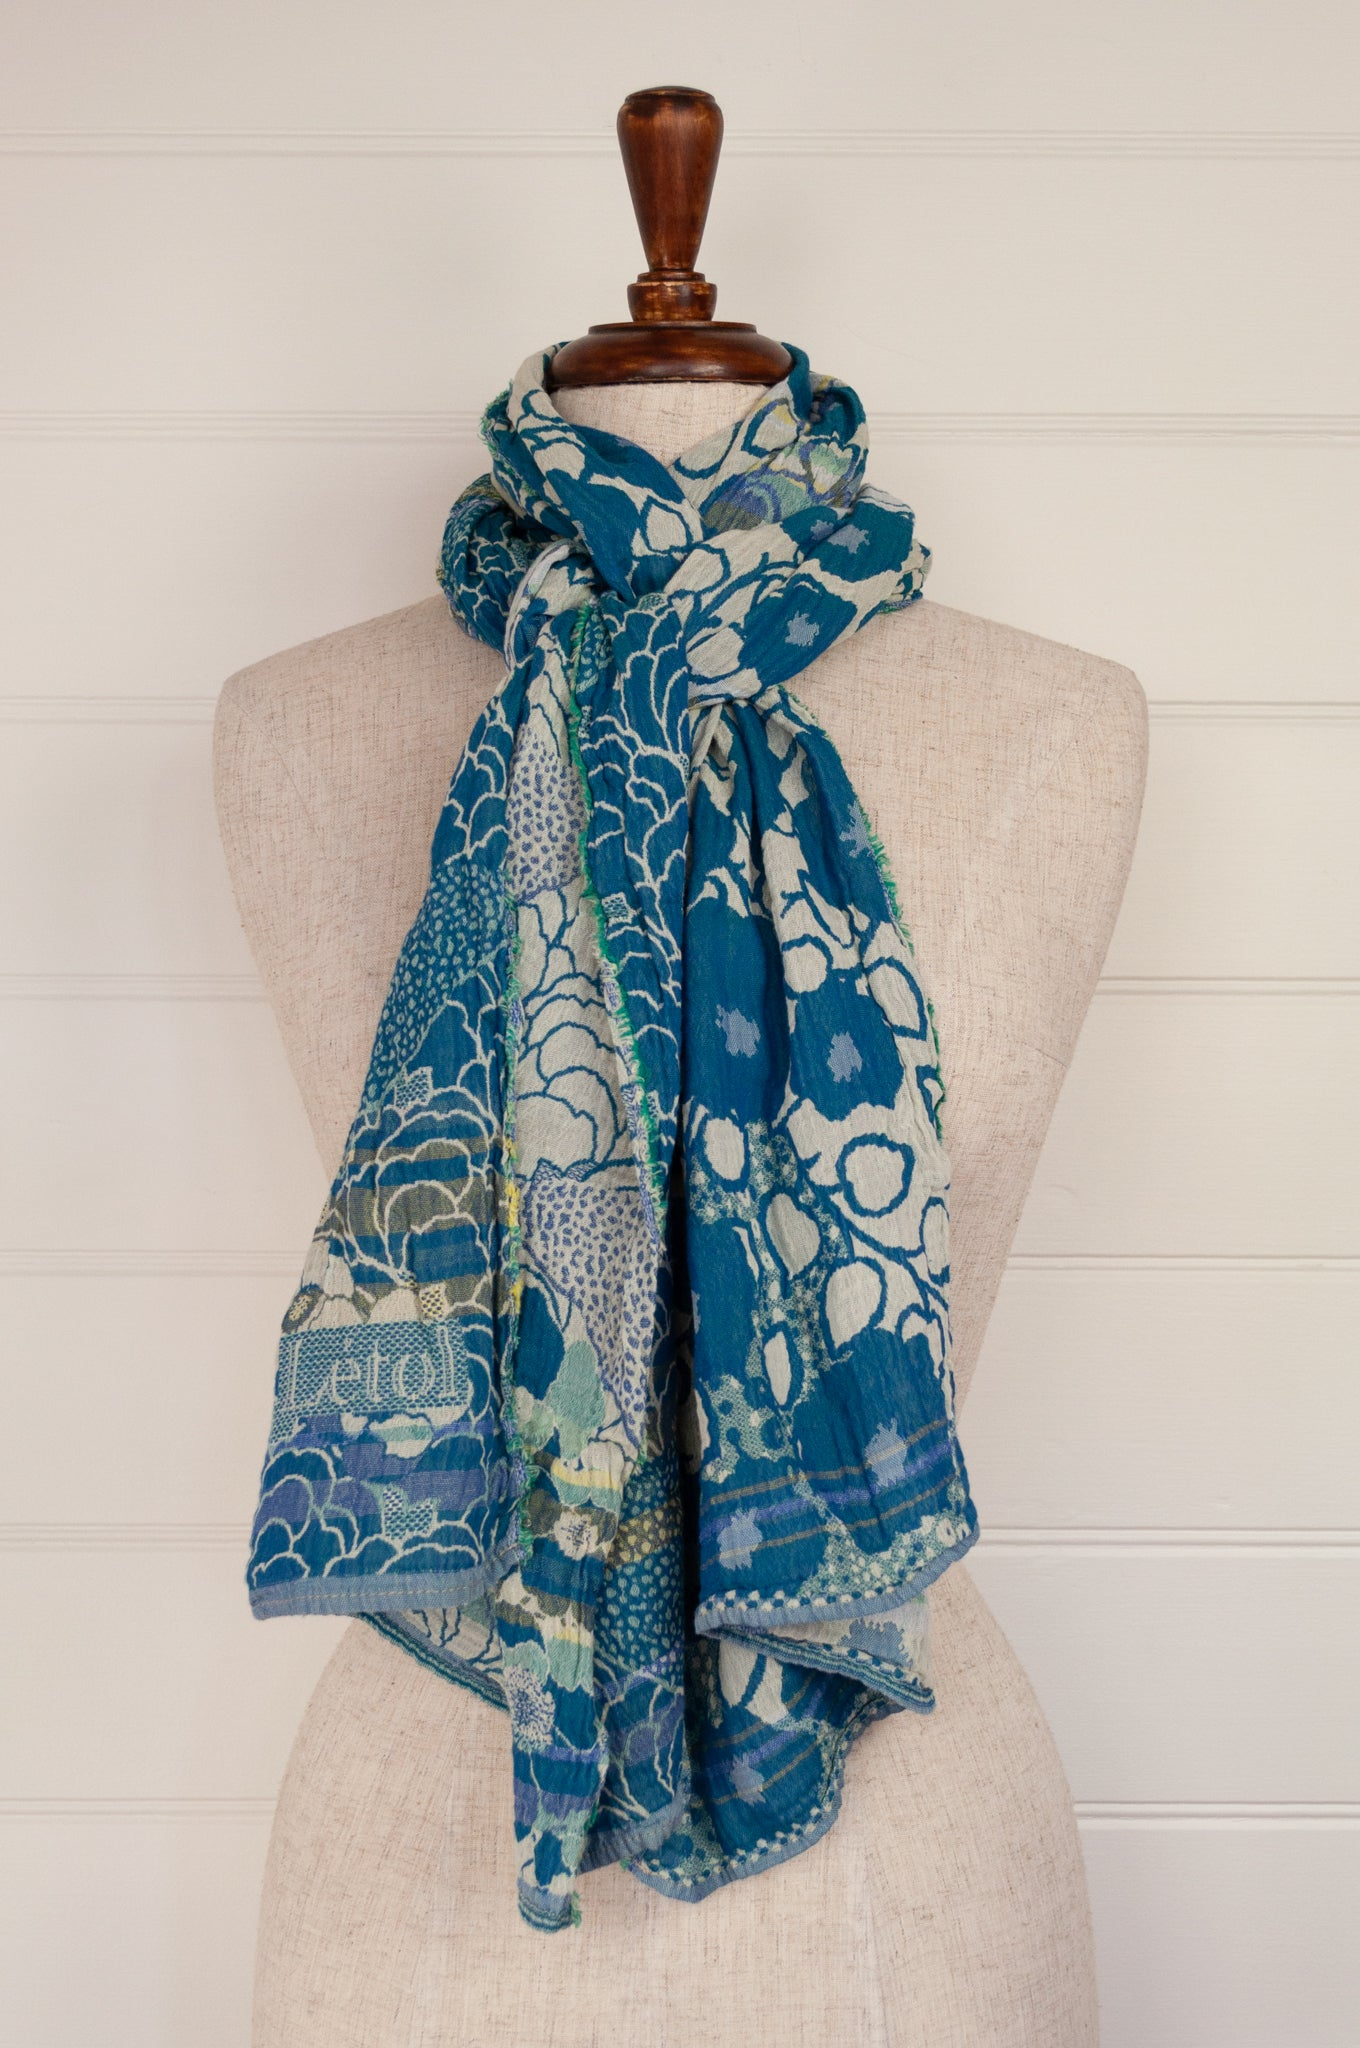 Made in France organic cotton jacquard scarf from Letol, Samantha in cyan brilliant blue turquoise.